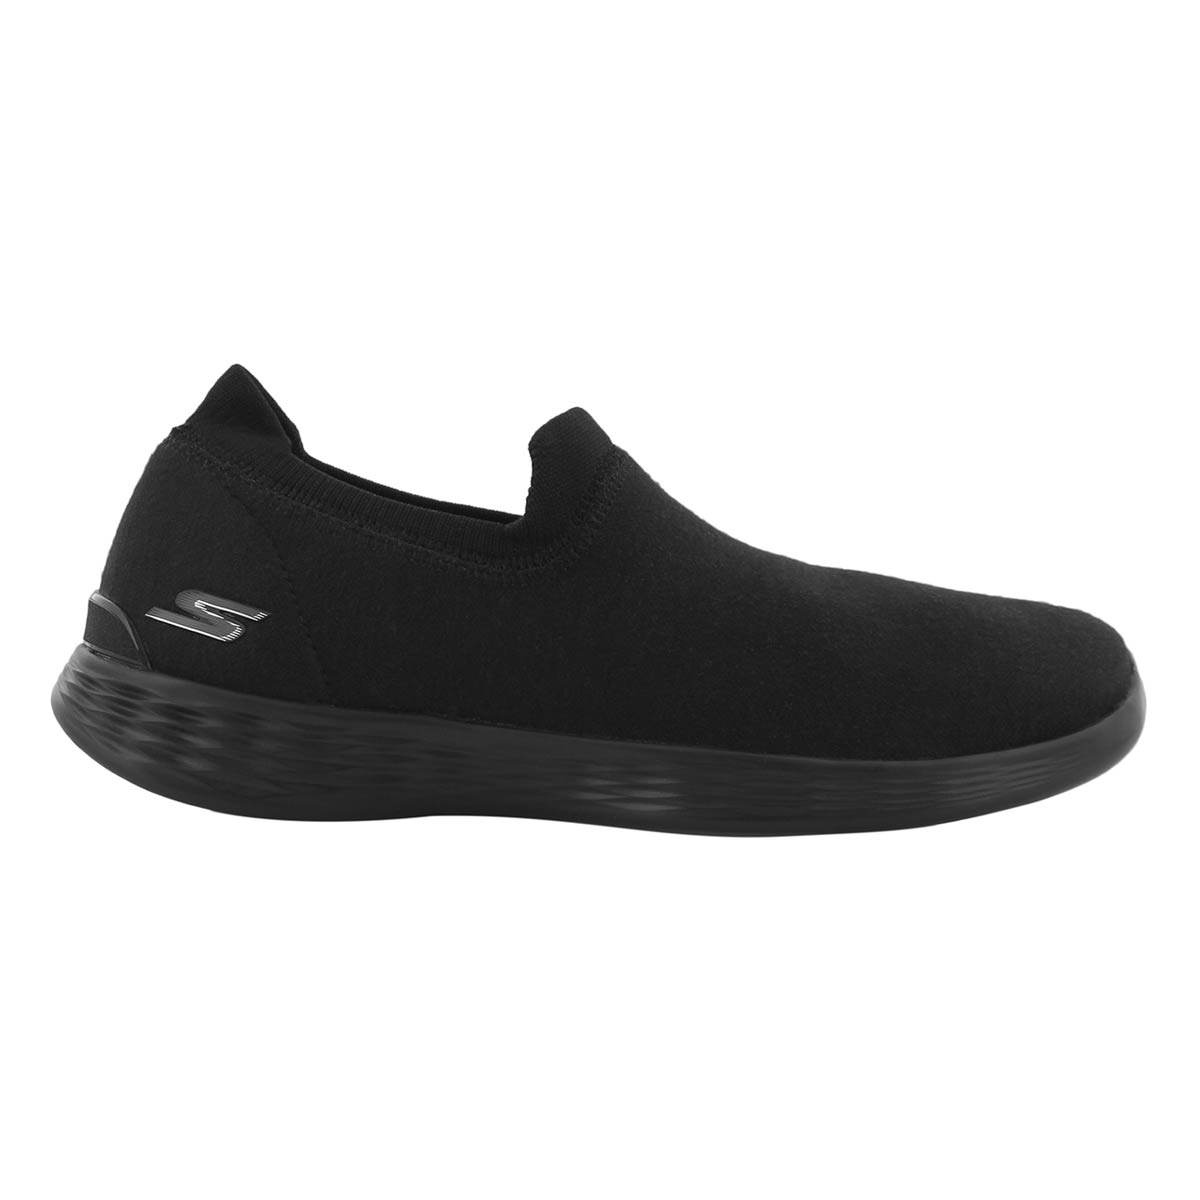 Lds YOU Define Perfection blk/blk slipon